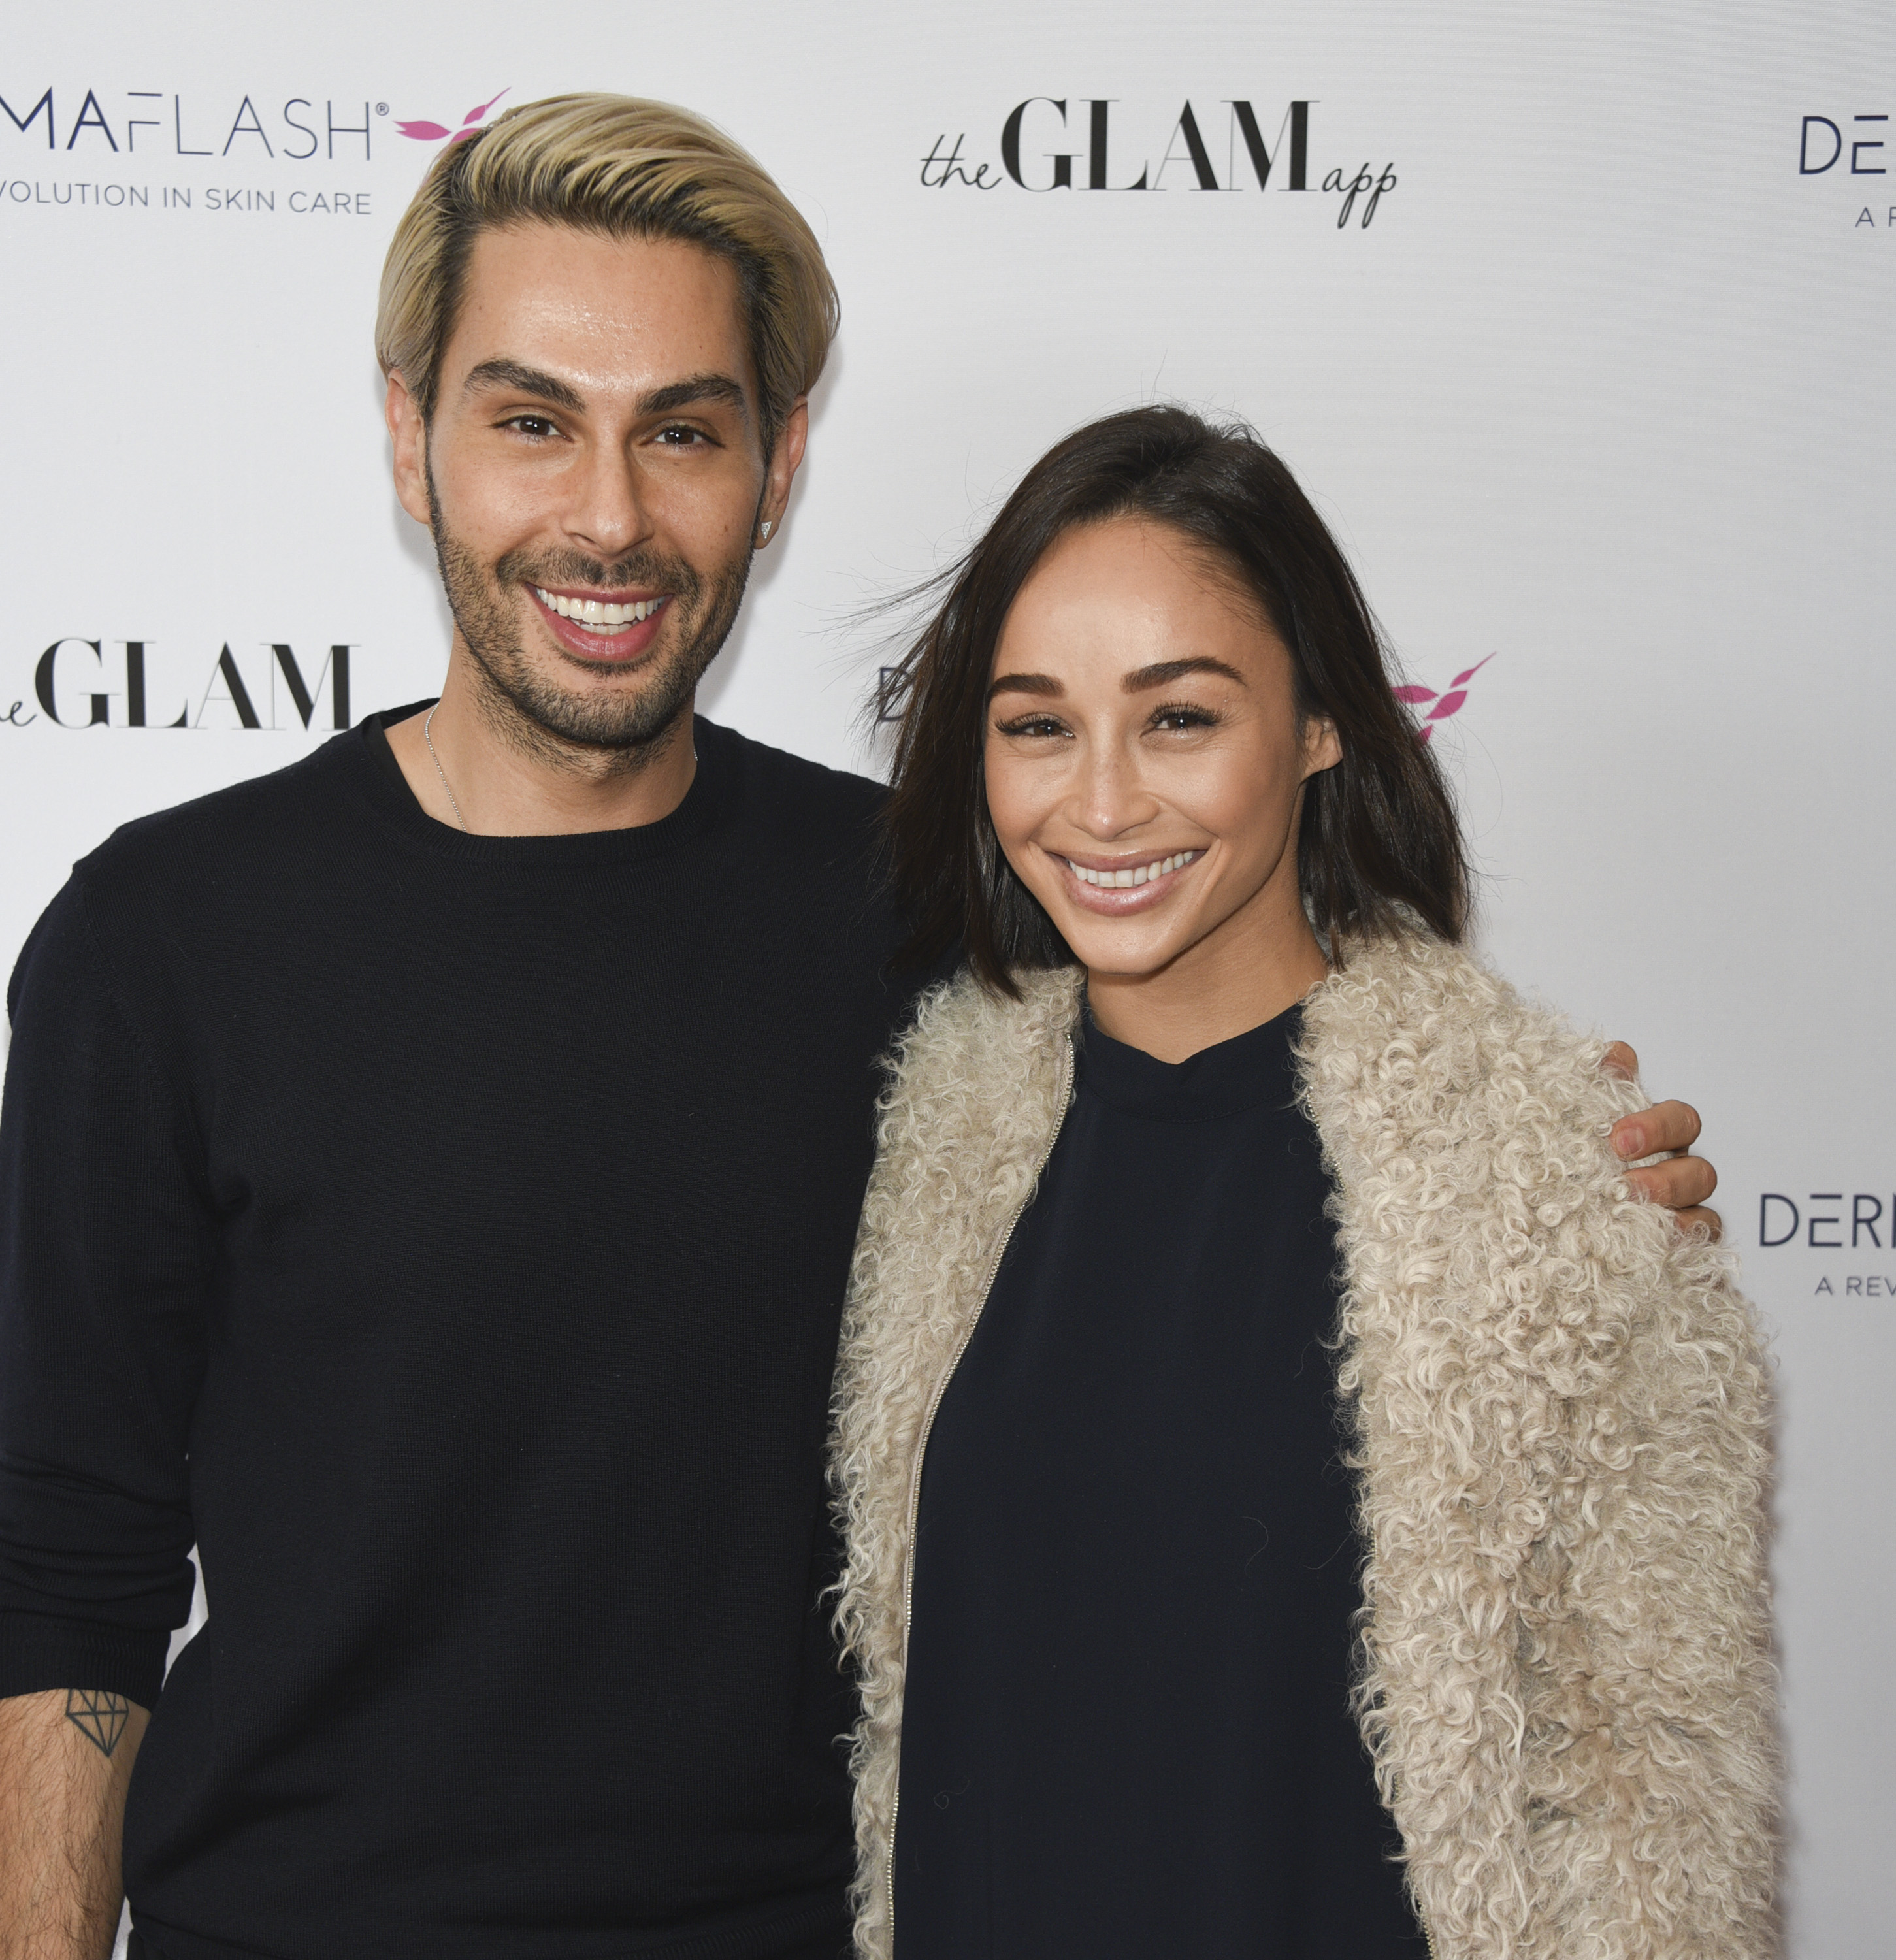 BEVERLY HILLS, CA - FEBRUARY 24:  Joey Maloof and Ashley Madekwe attends The Glam App x DERMAFLASH Host Pre-Oscars Suite at Peninsula Hotel on February 24, 2017 in Beverly Hills, California.  (Photo by Michael Bezjian/WireImage)